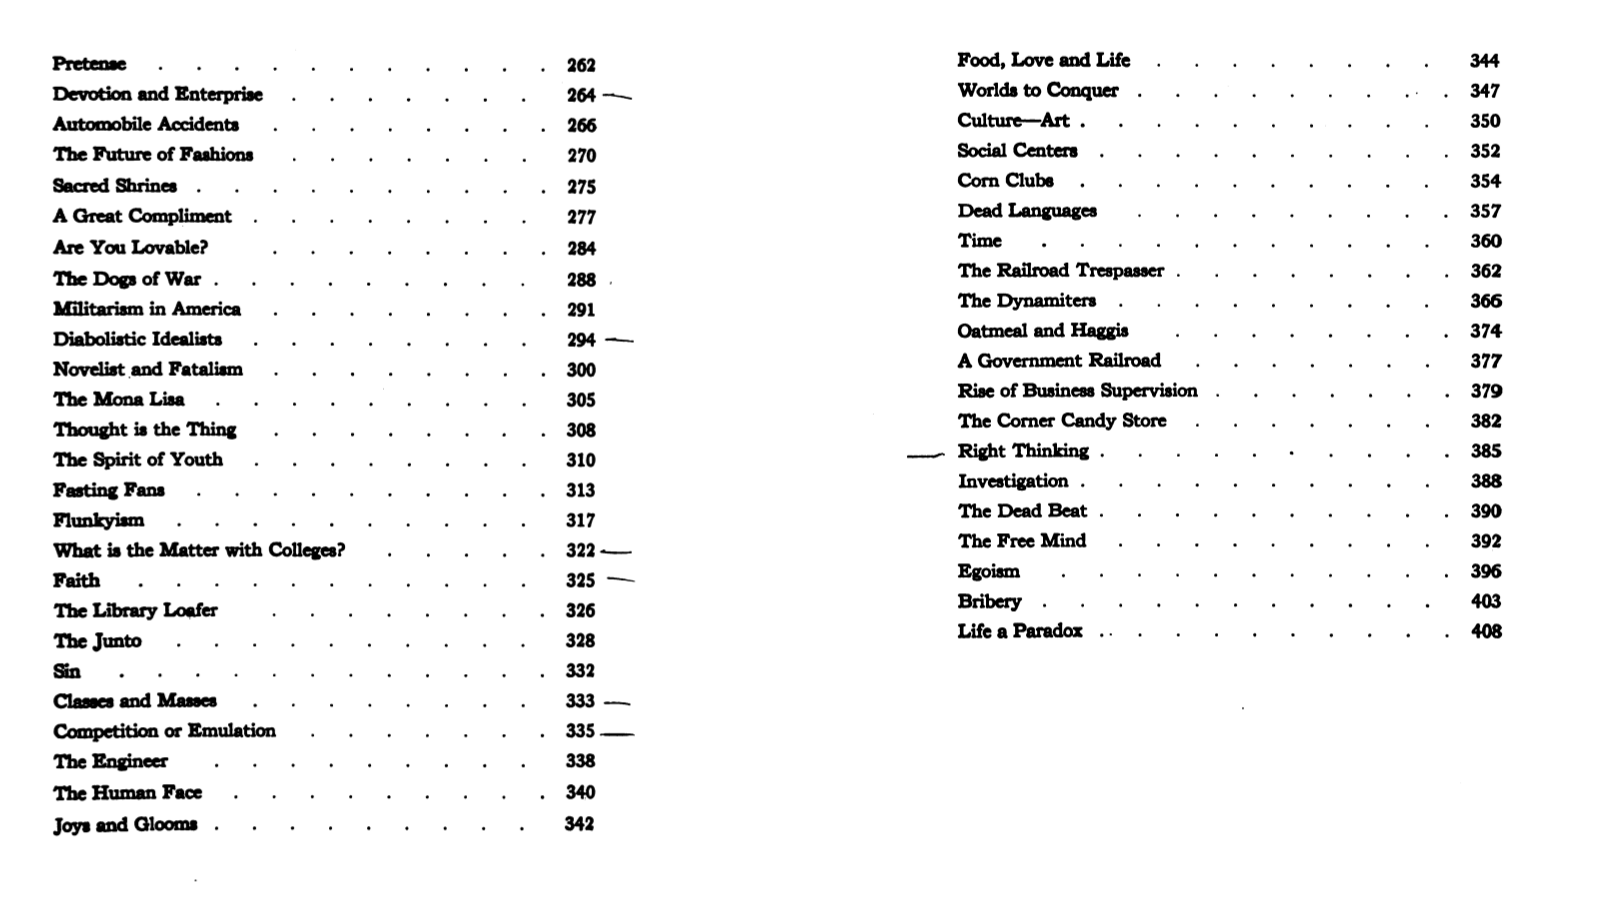 life is a paradox benjamin de casseres two pages from the table of contents for philistia vol 9 of selected writings